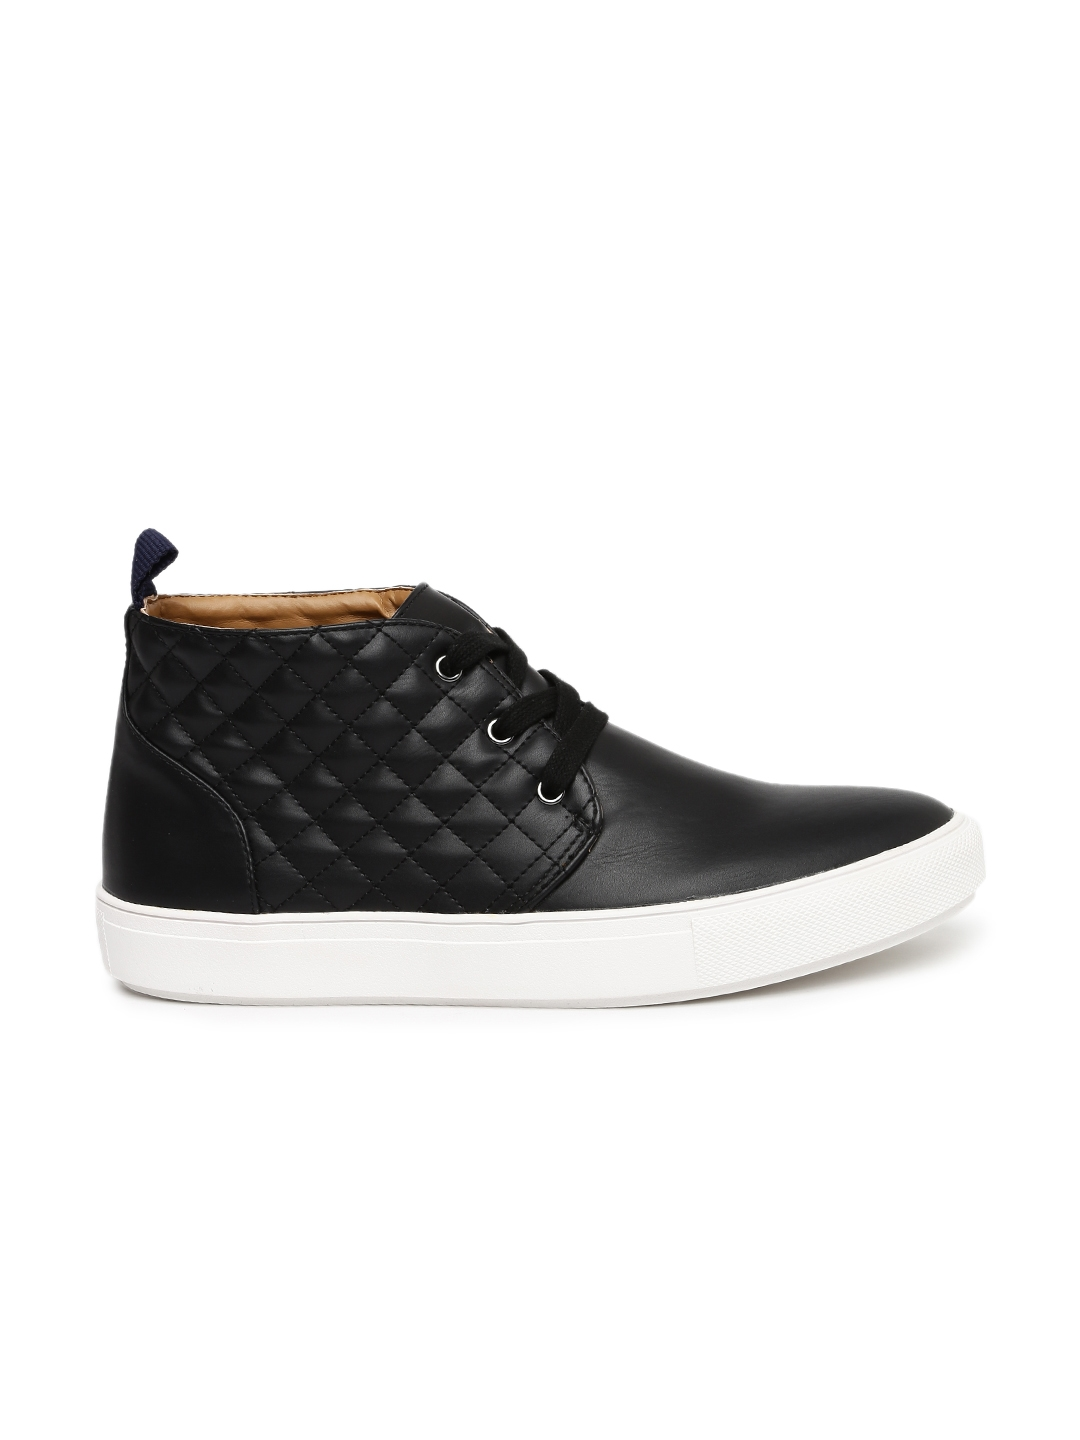 e98d3afa89b Buy Steve Madden Men Black Quilted Mid Top Sneakers - Casual Shoes ...